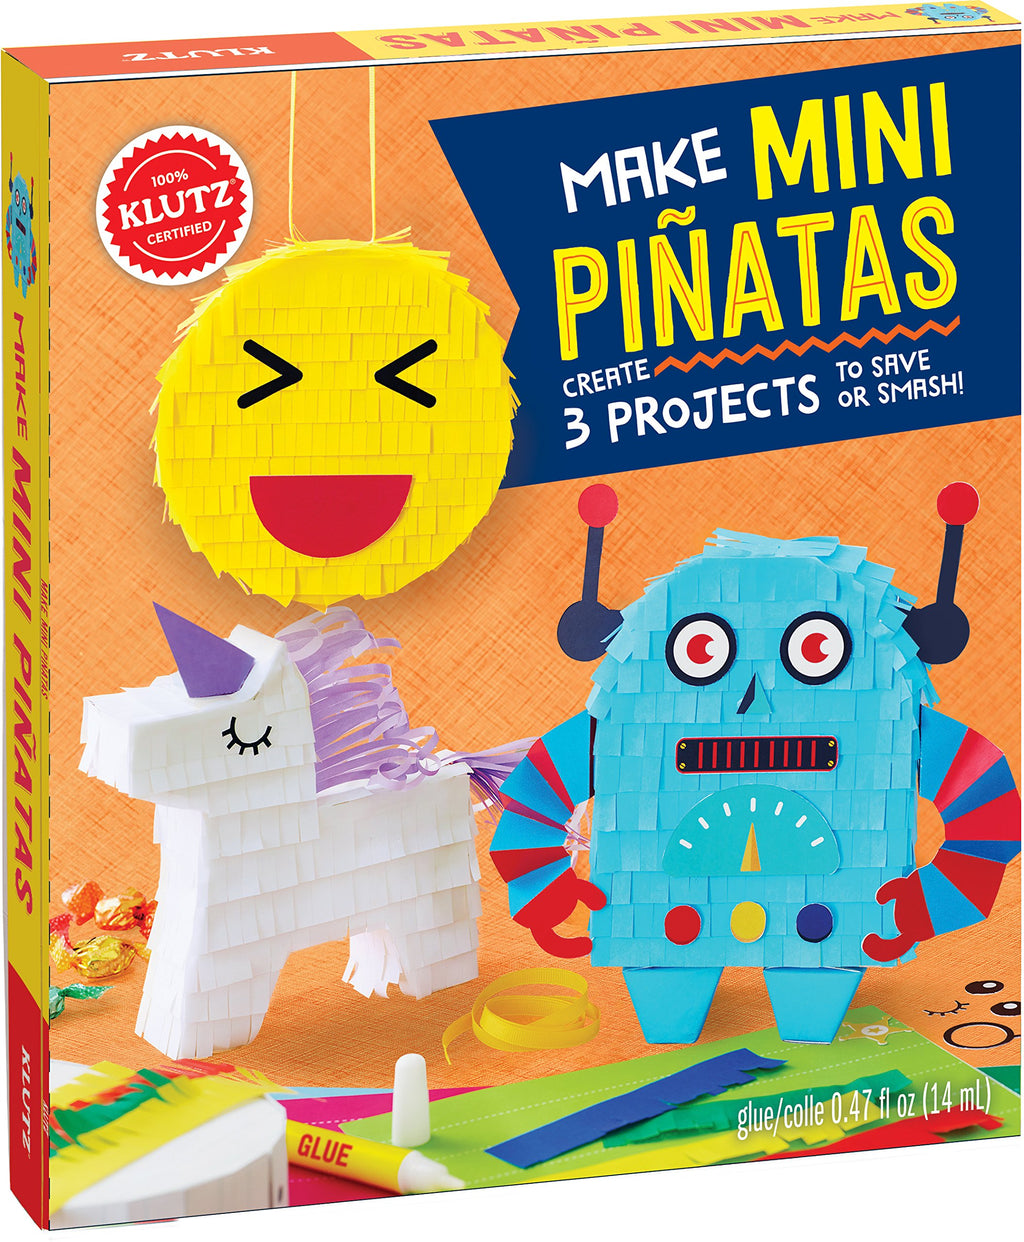 KLUTZ MAKE MINI PINATAS Castle toys